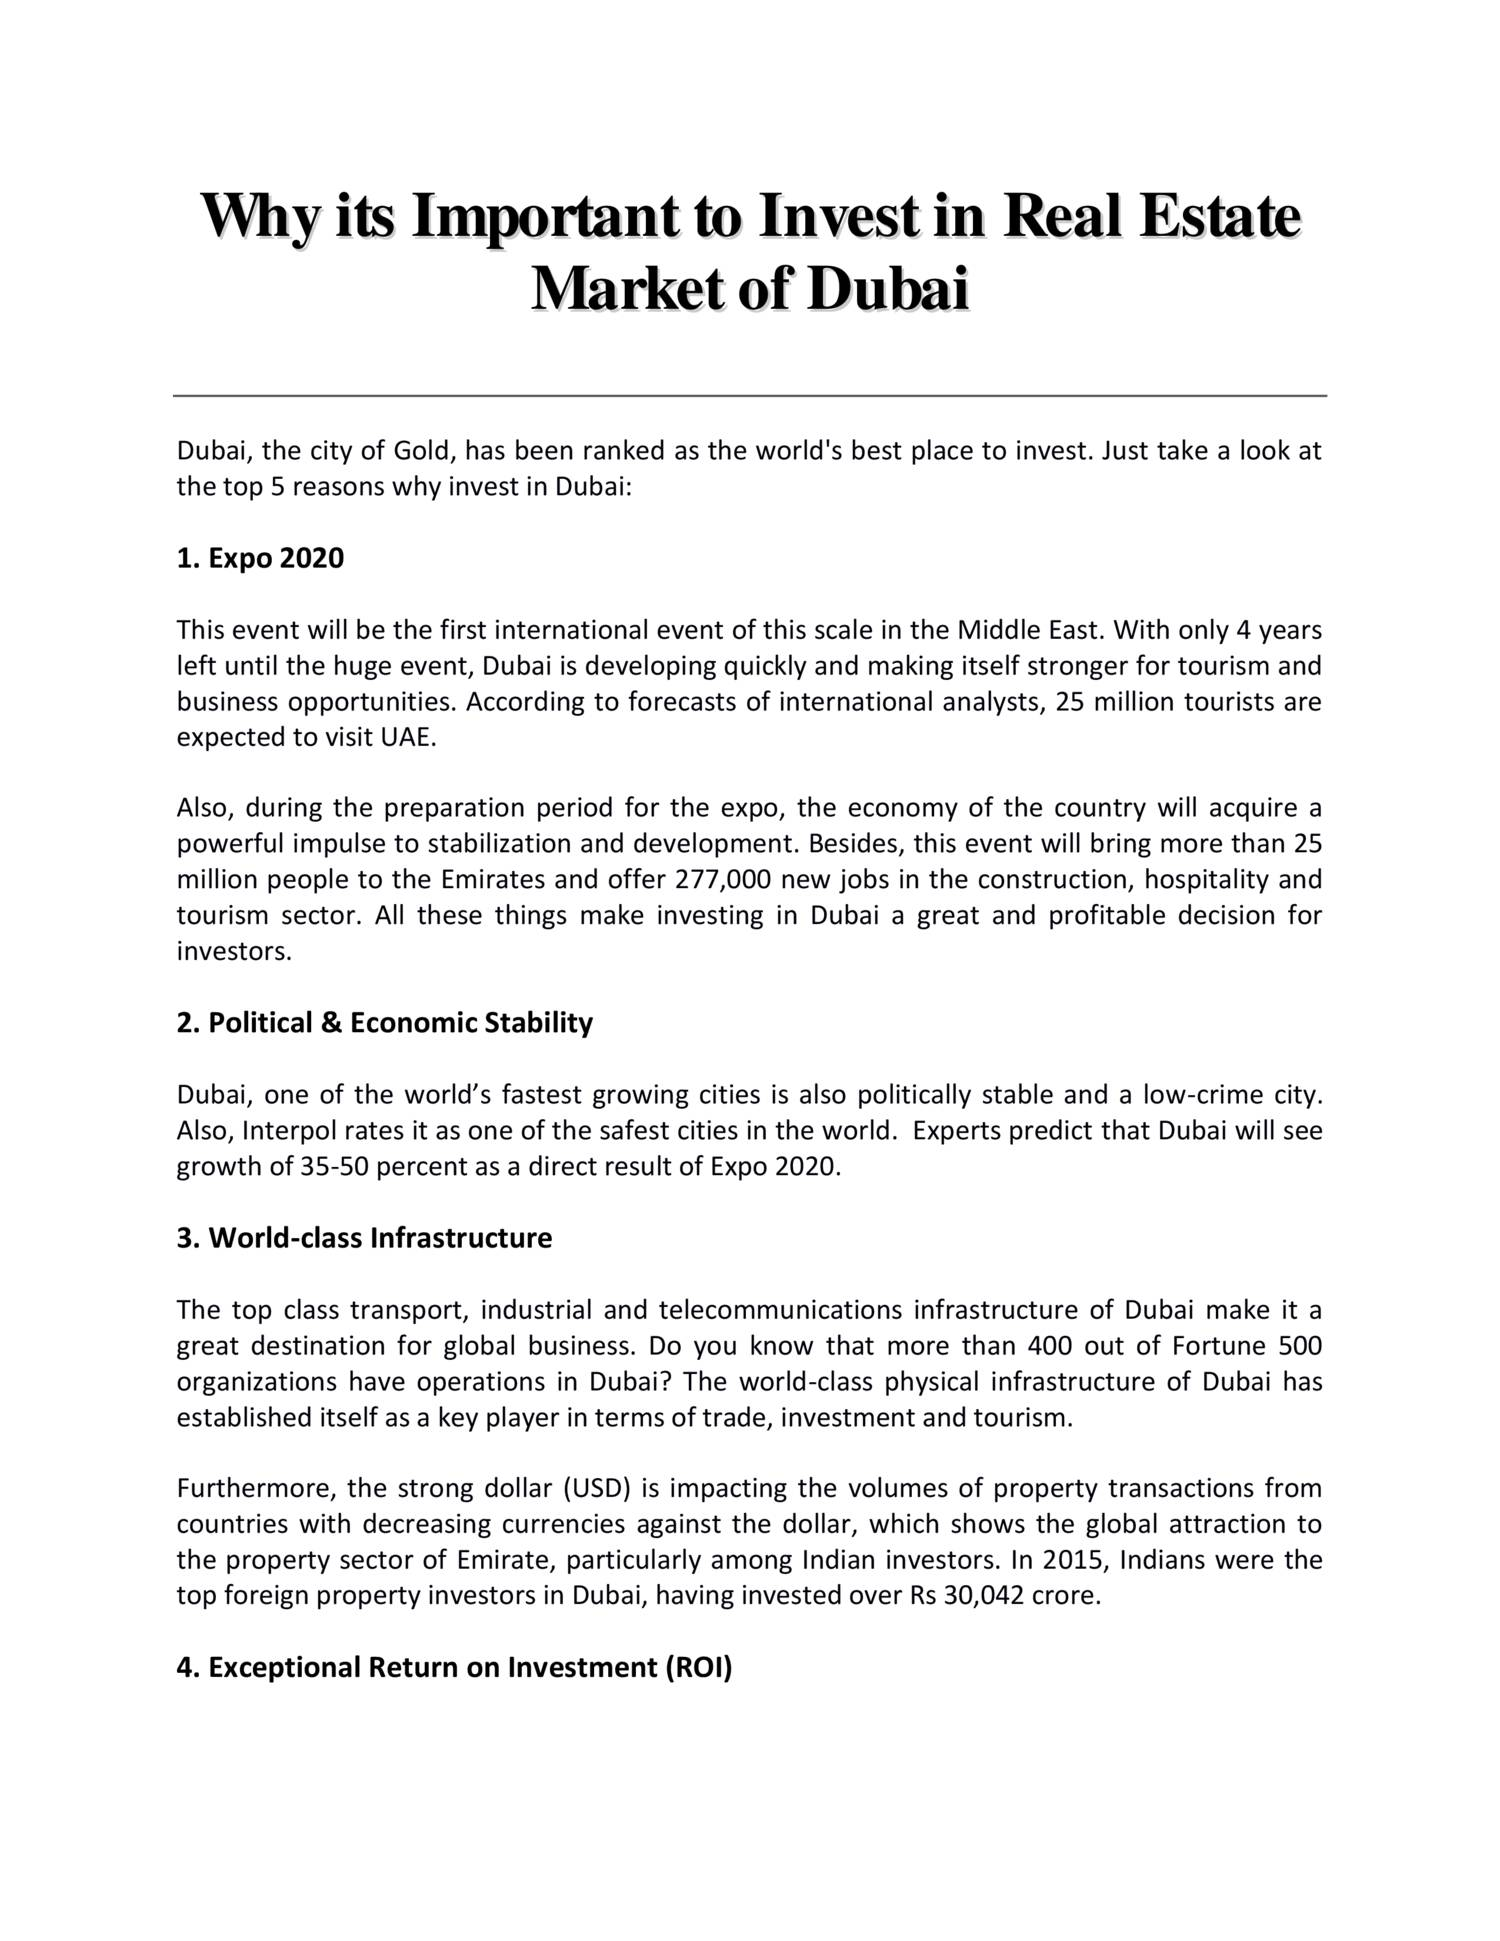 Why its important to invest in Real Estate Market of Dubai